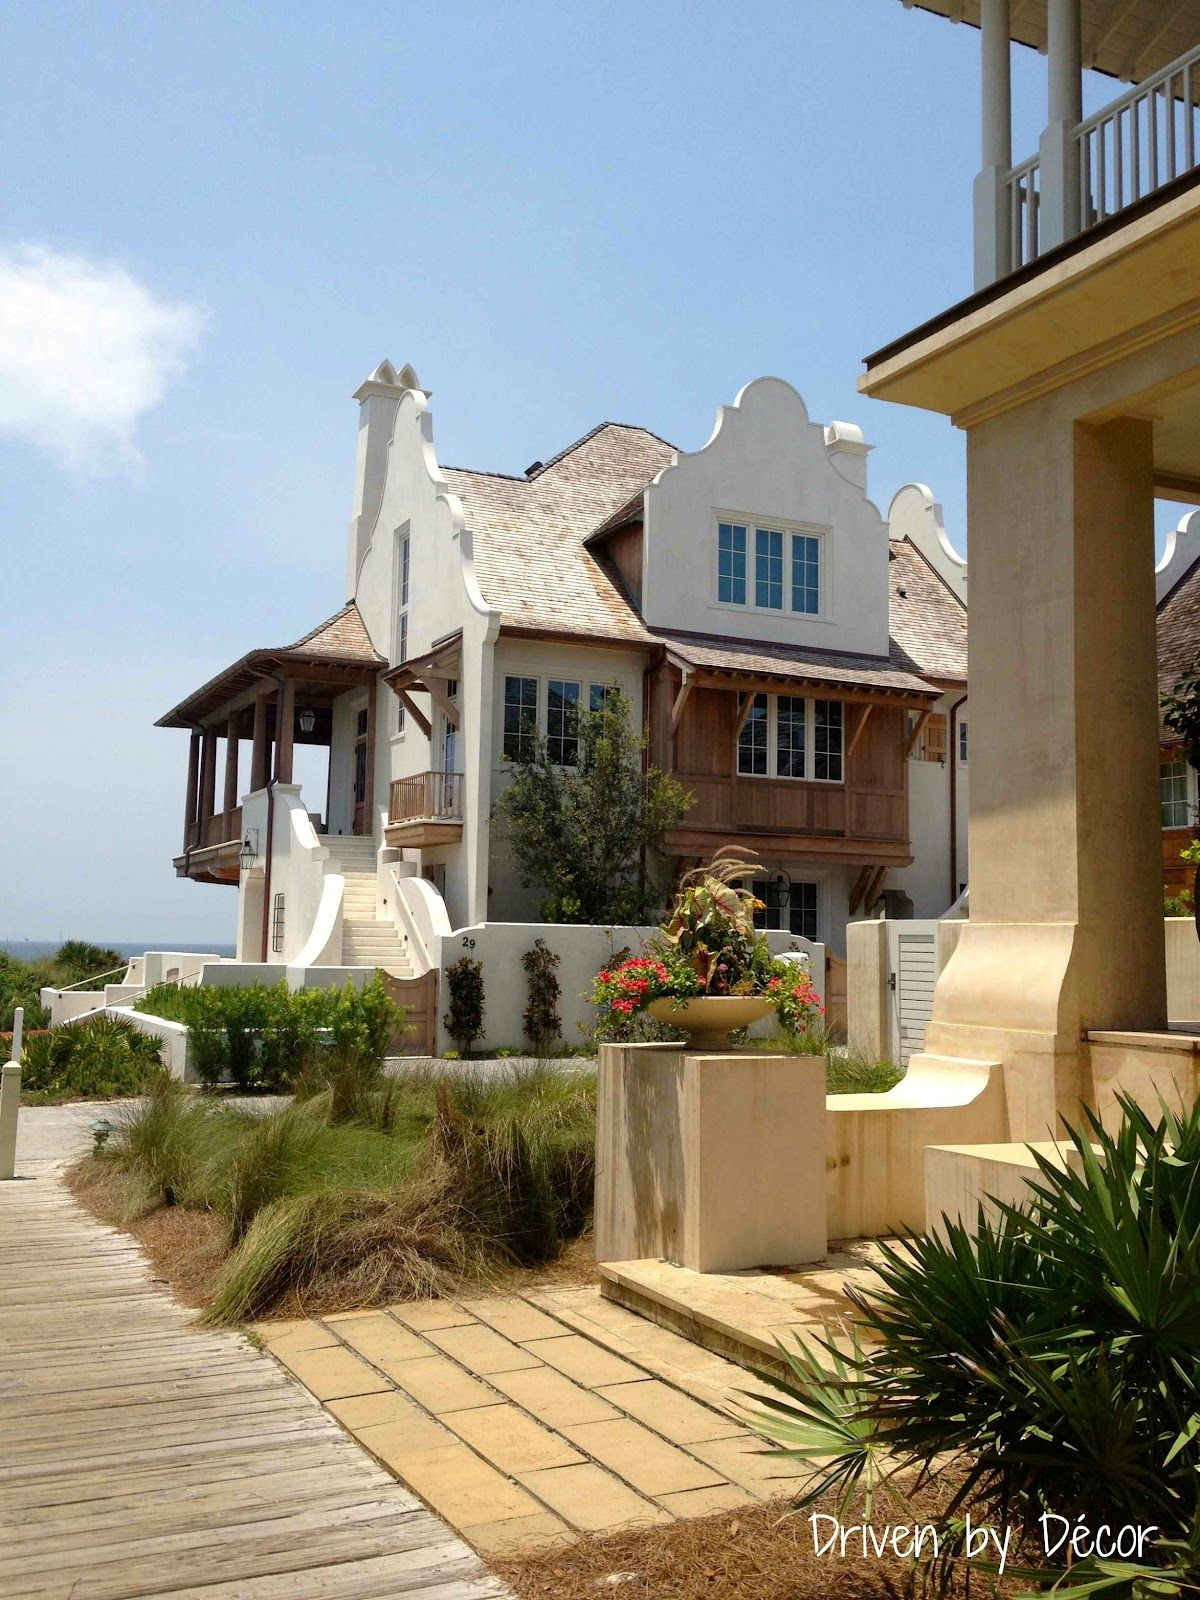 Amazing Architecture In This Home In Rosemary Beach